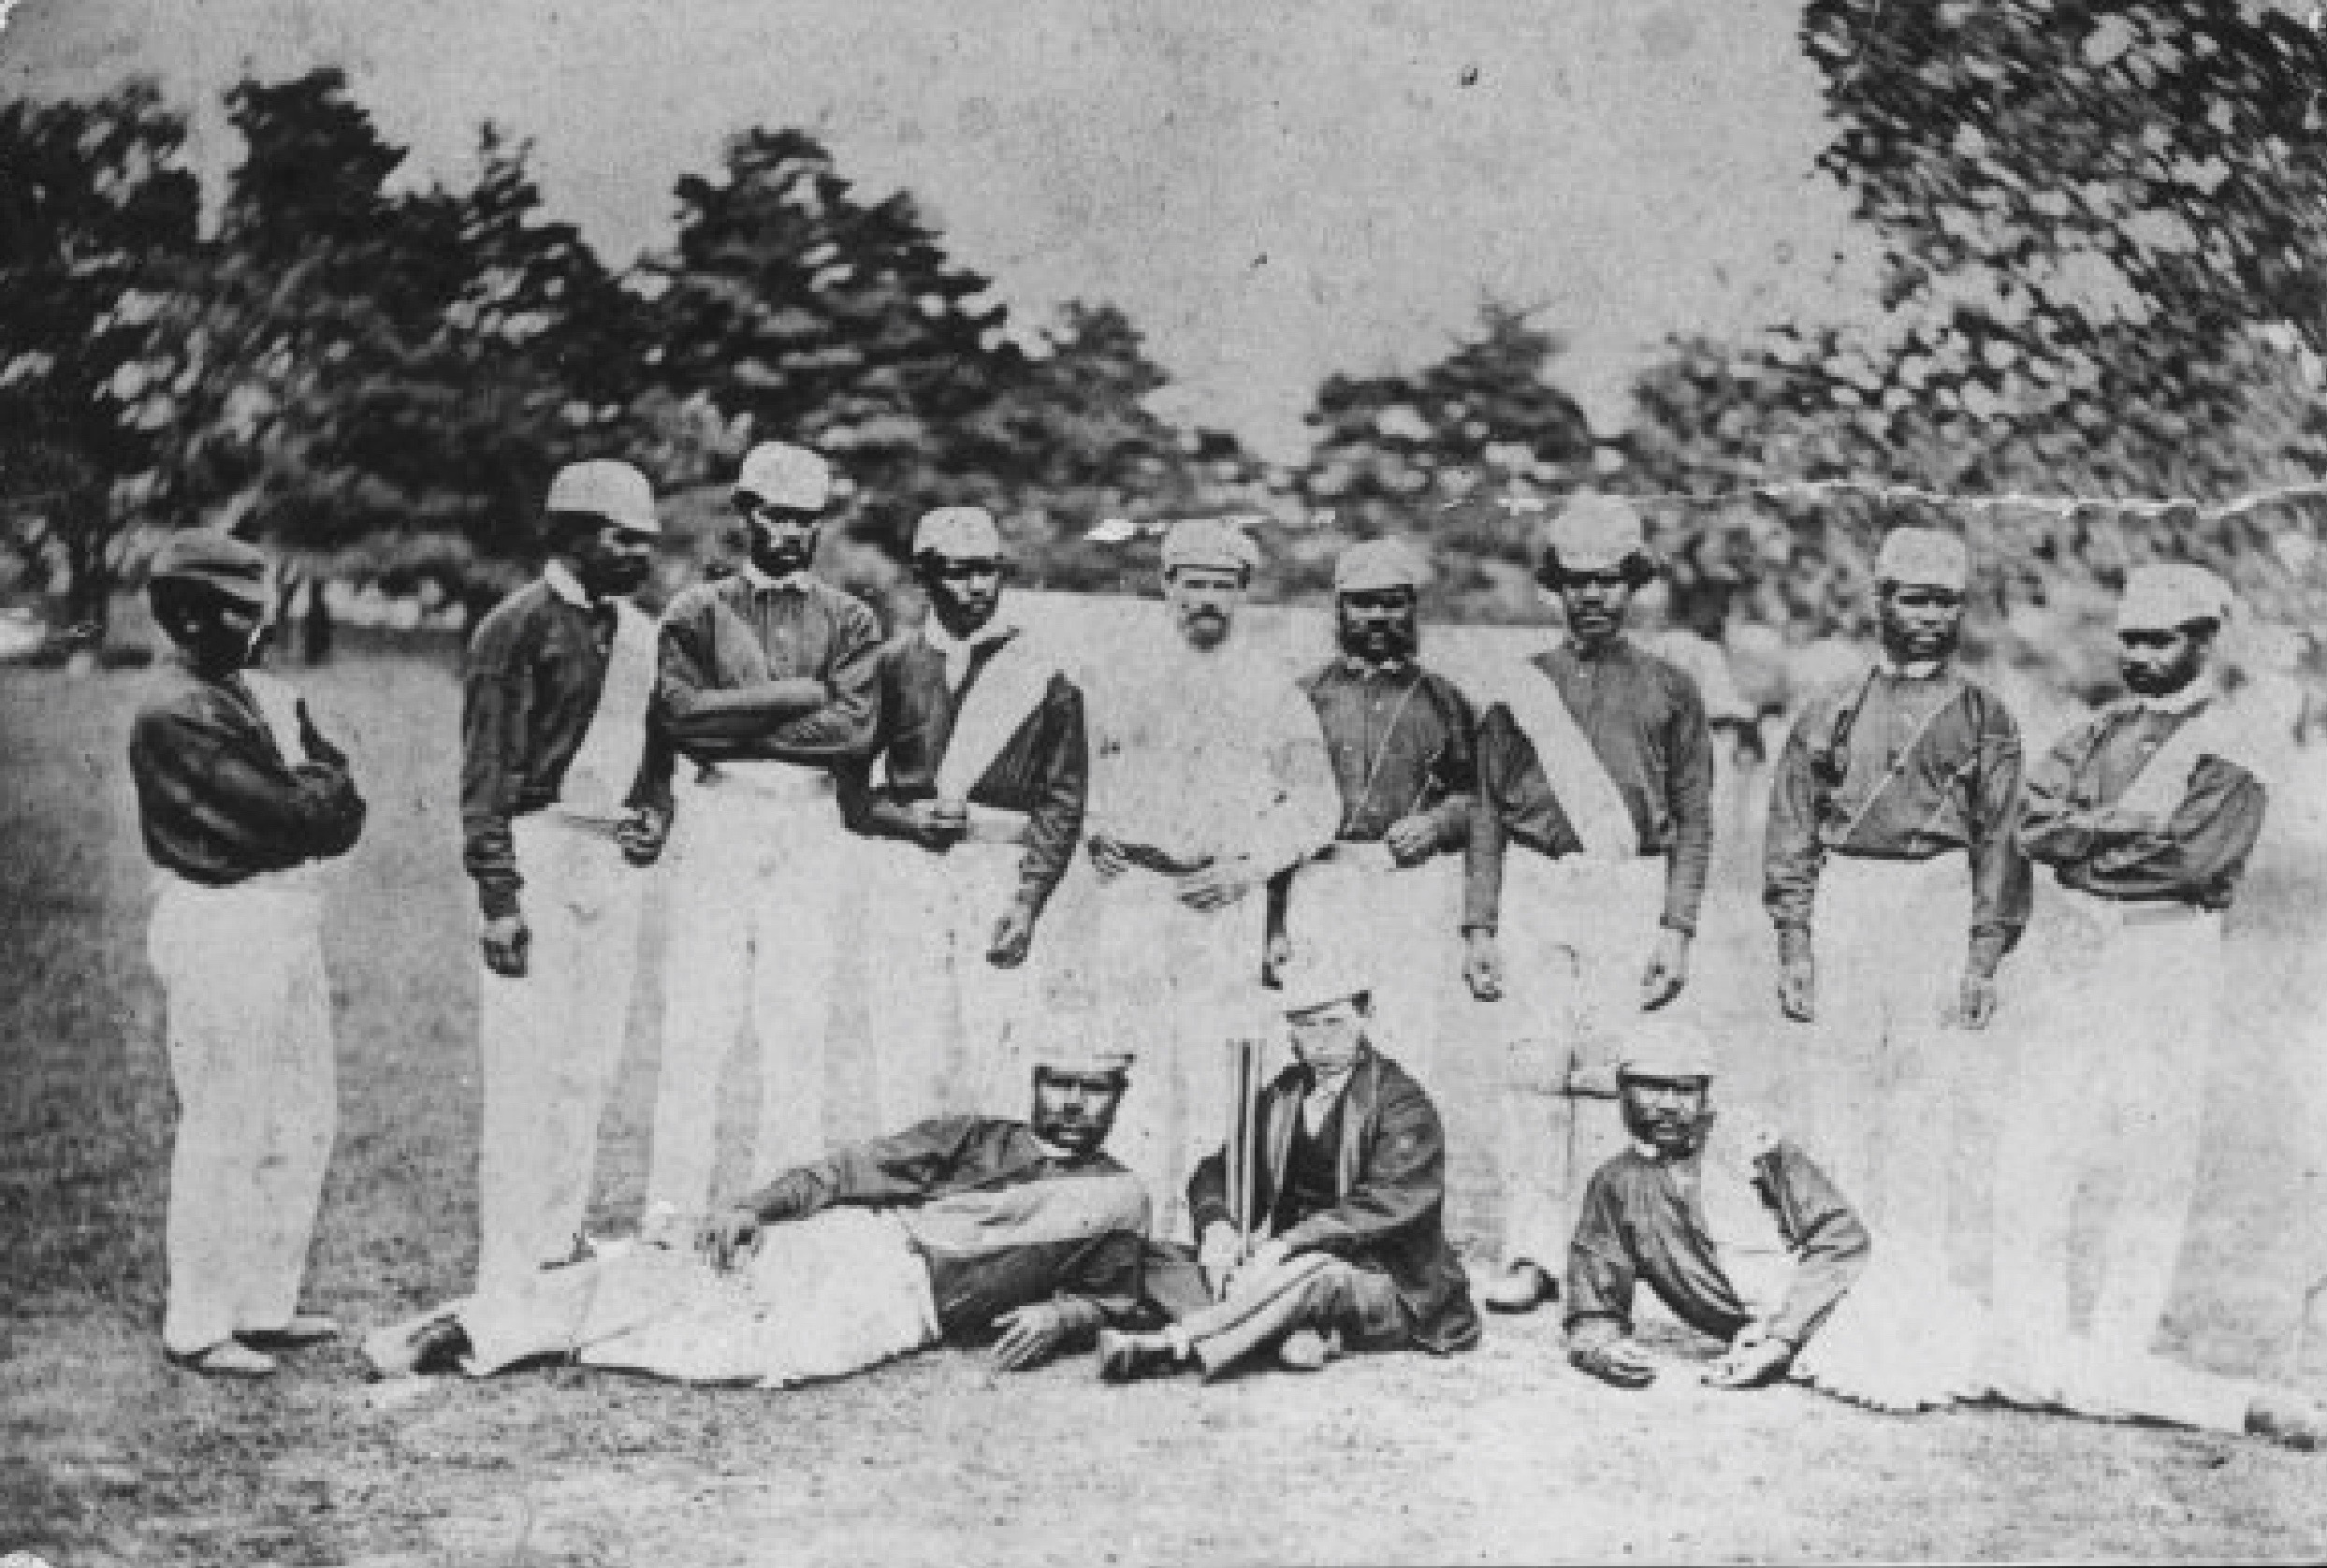 Australia's first international cricket team found fame in the UK. At home, they were betrayed